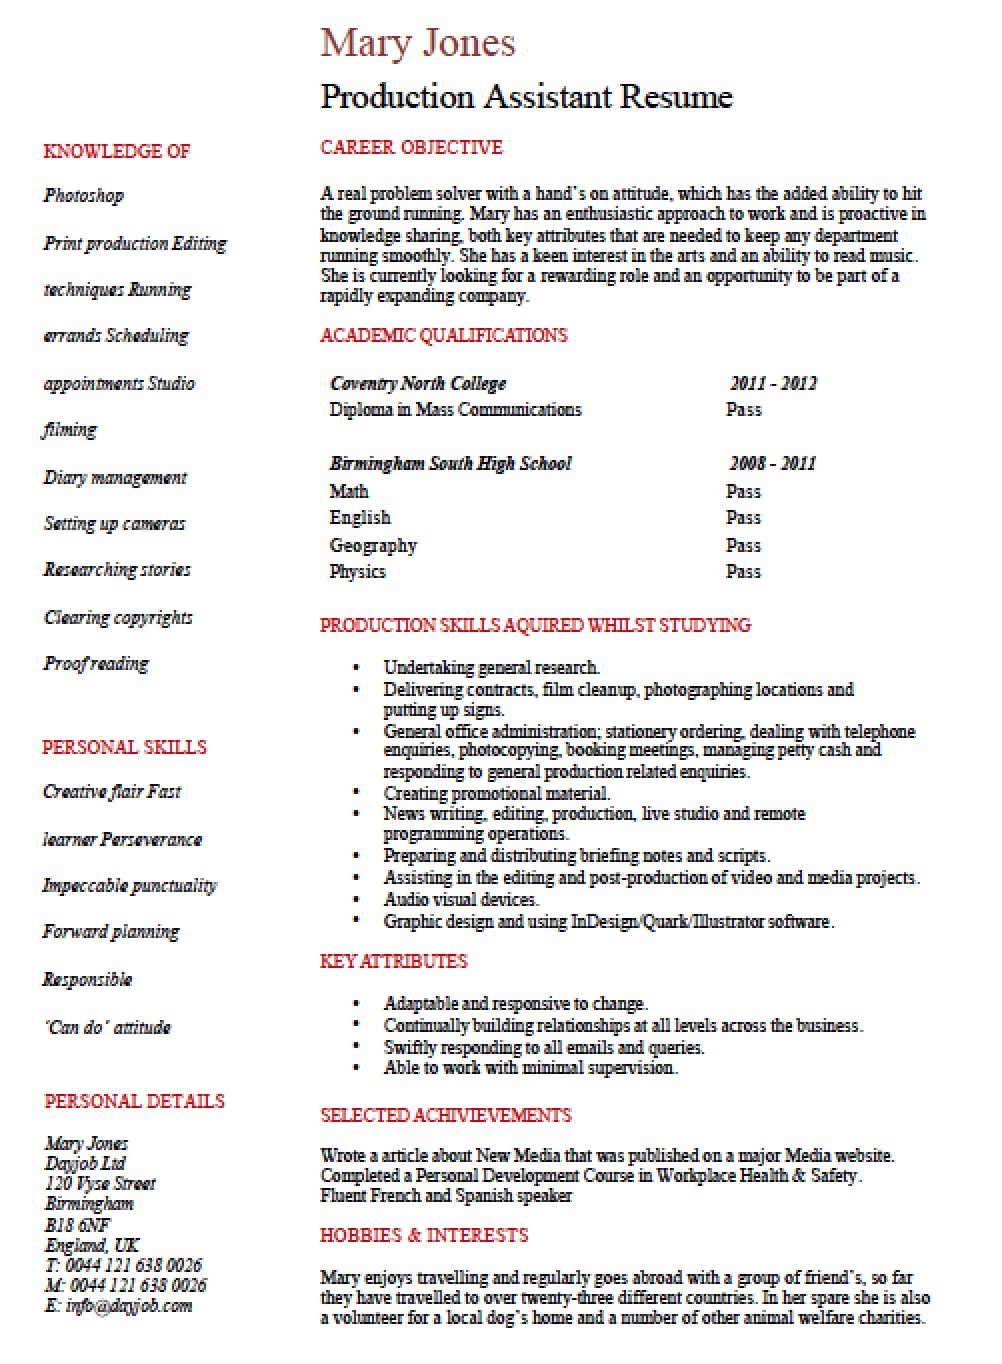 adobe pdf pdf rich text rtf microsoft word - Sample Entry Level Resume Templates